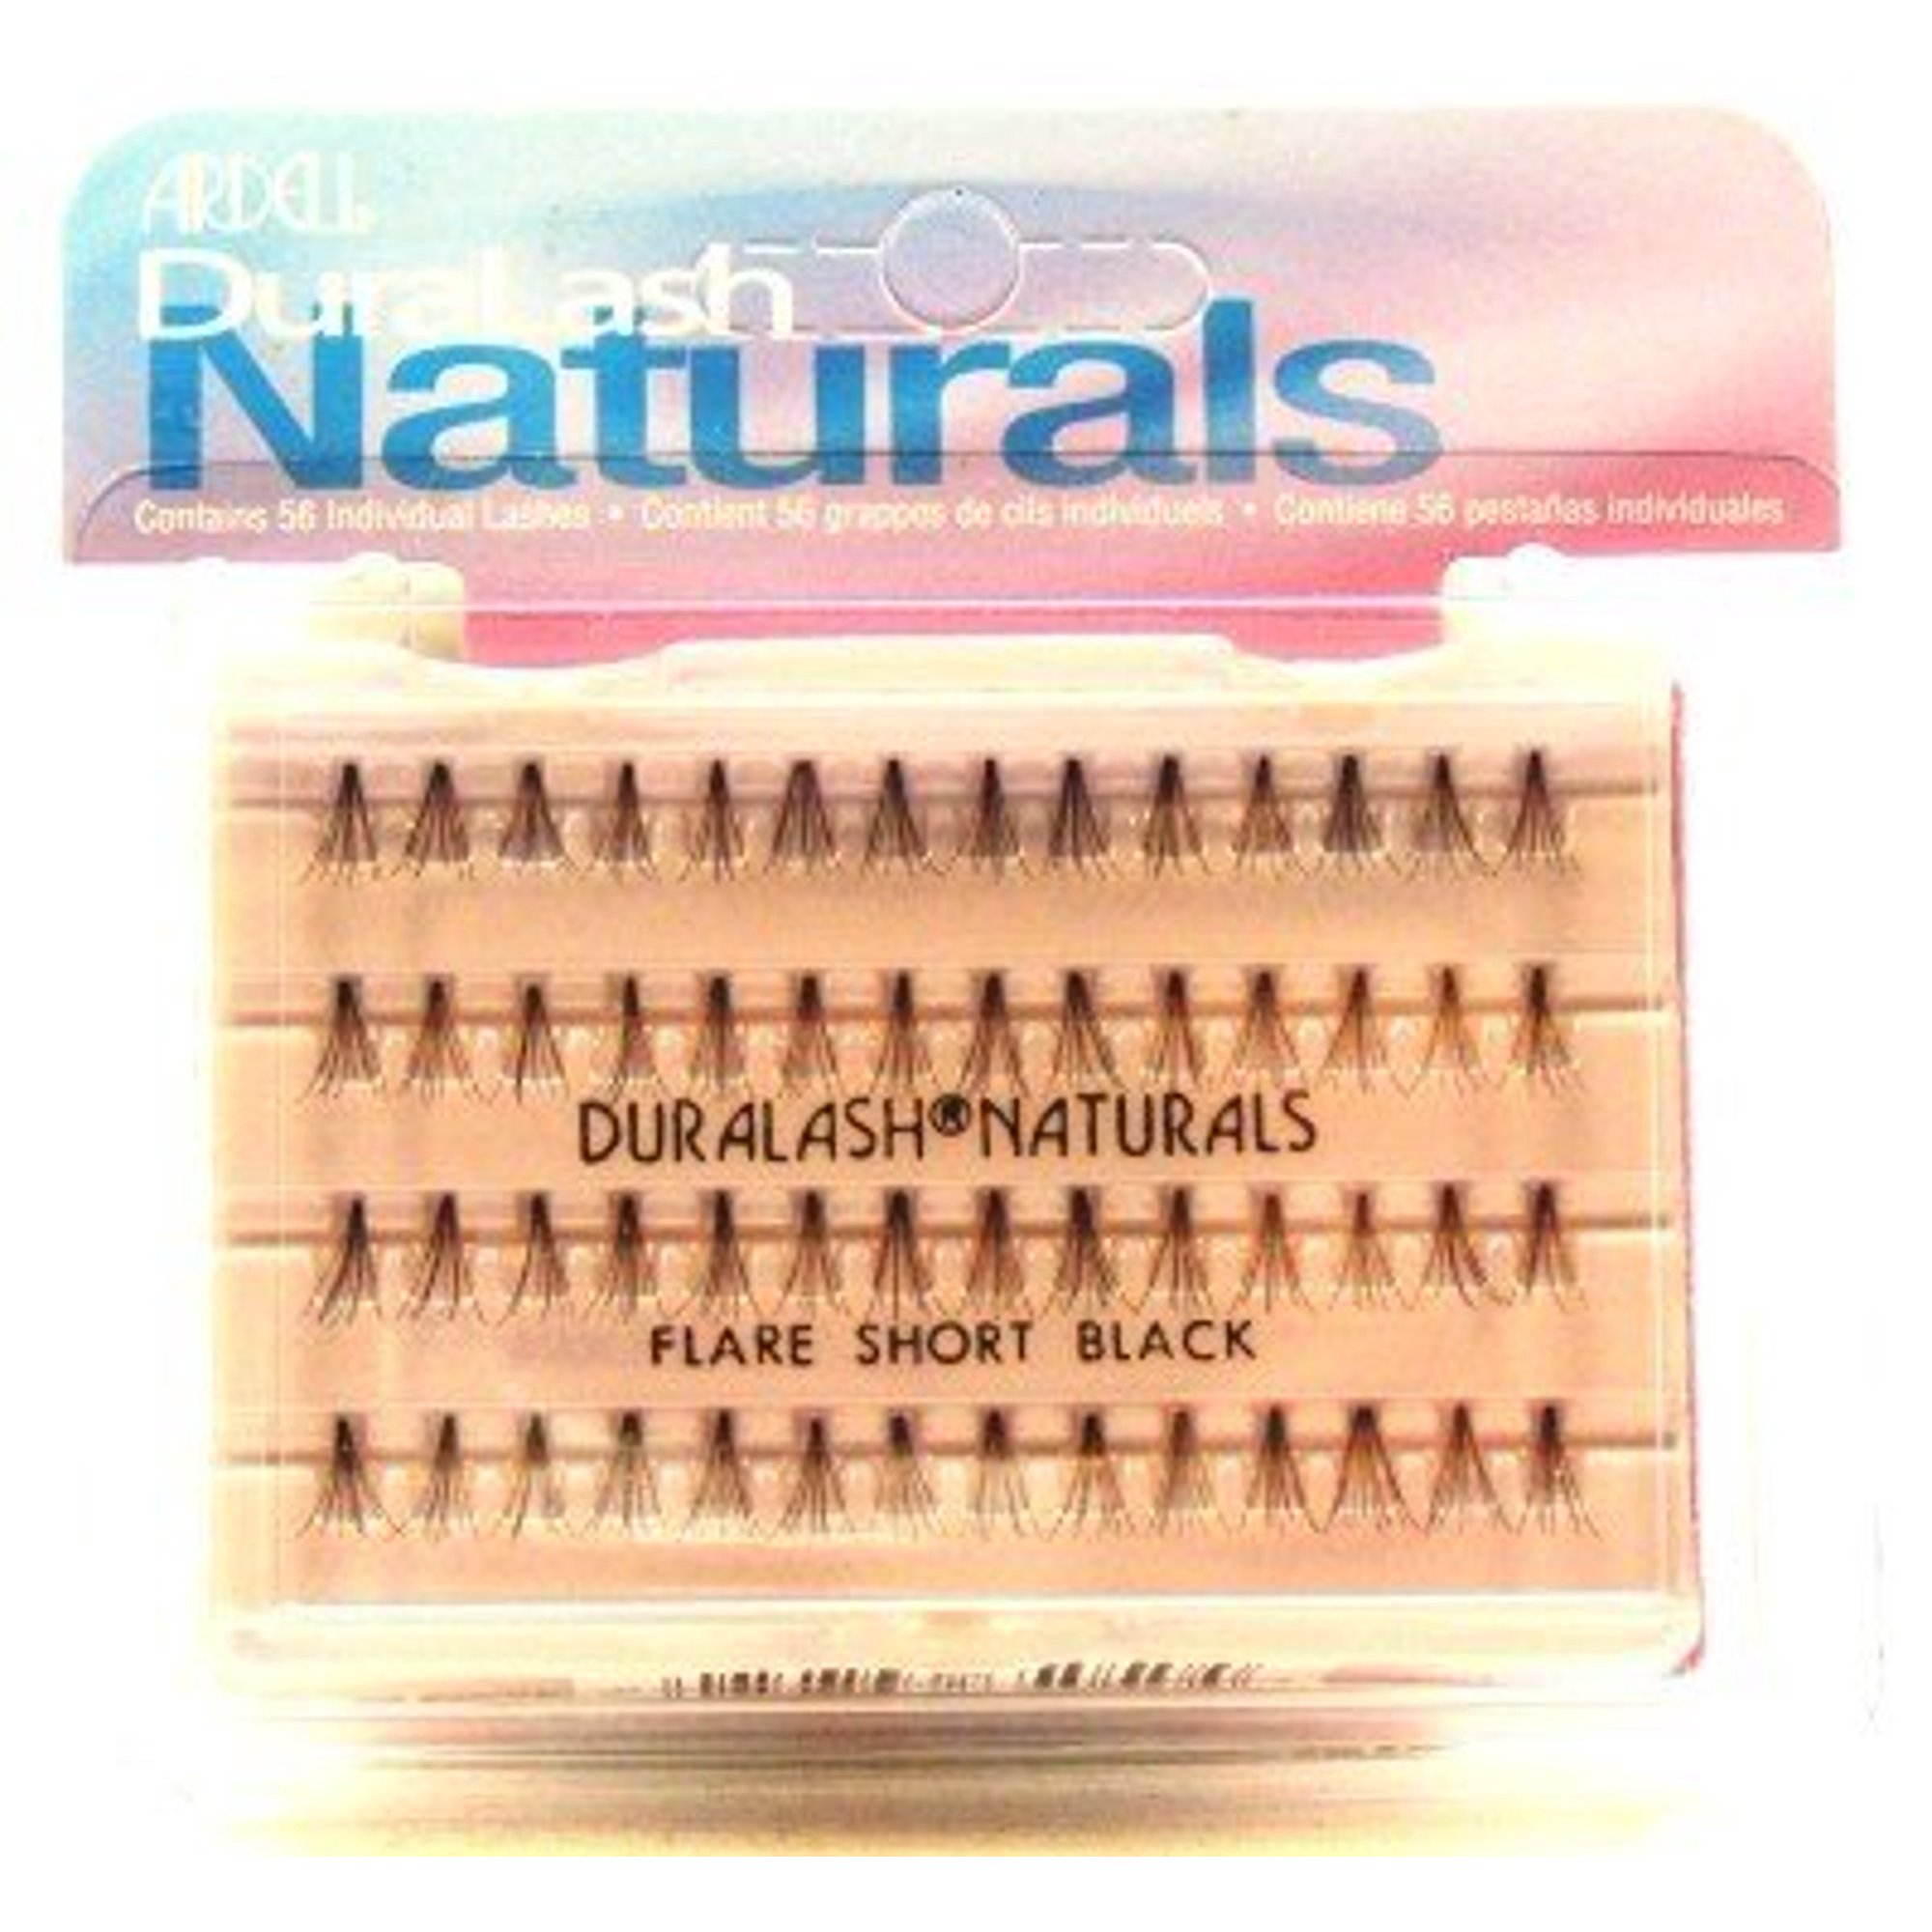 9603ecfd704 Ardell Duralash Naturals Flare Short Black (56 Lashes) (Case of 6) |  Walmart Canada ?